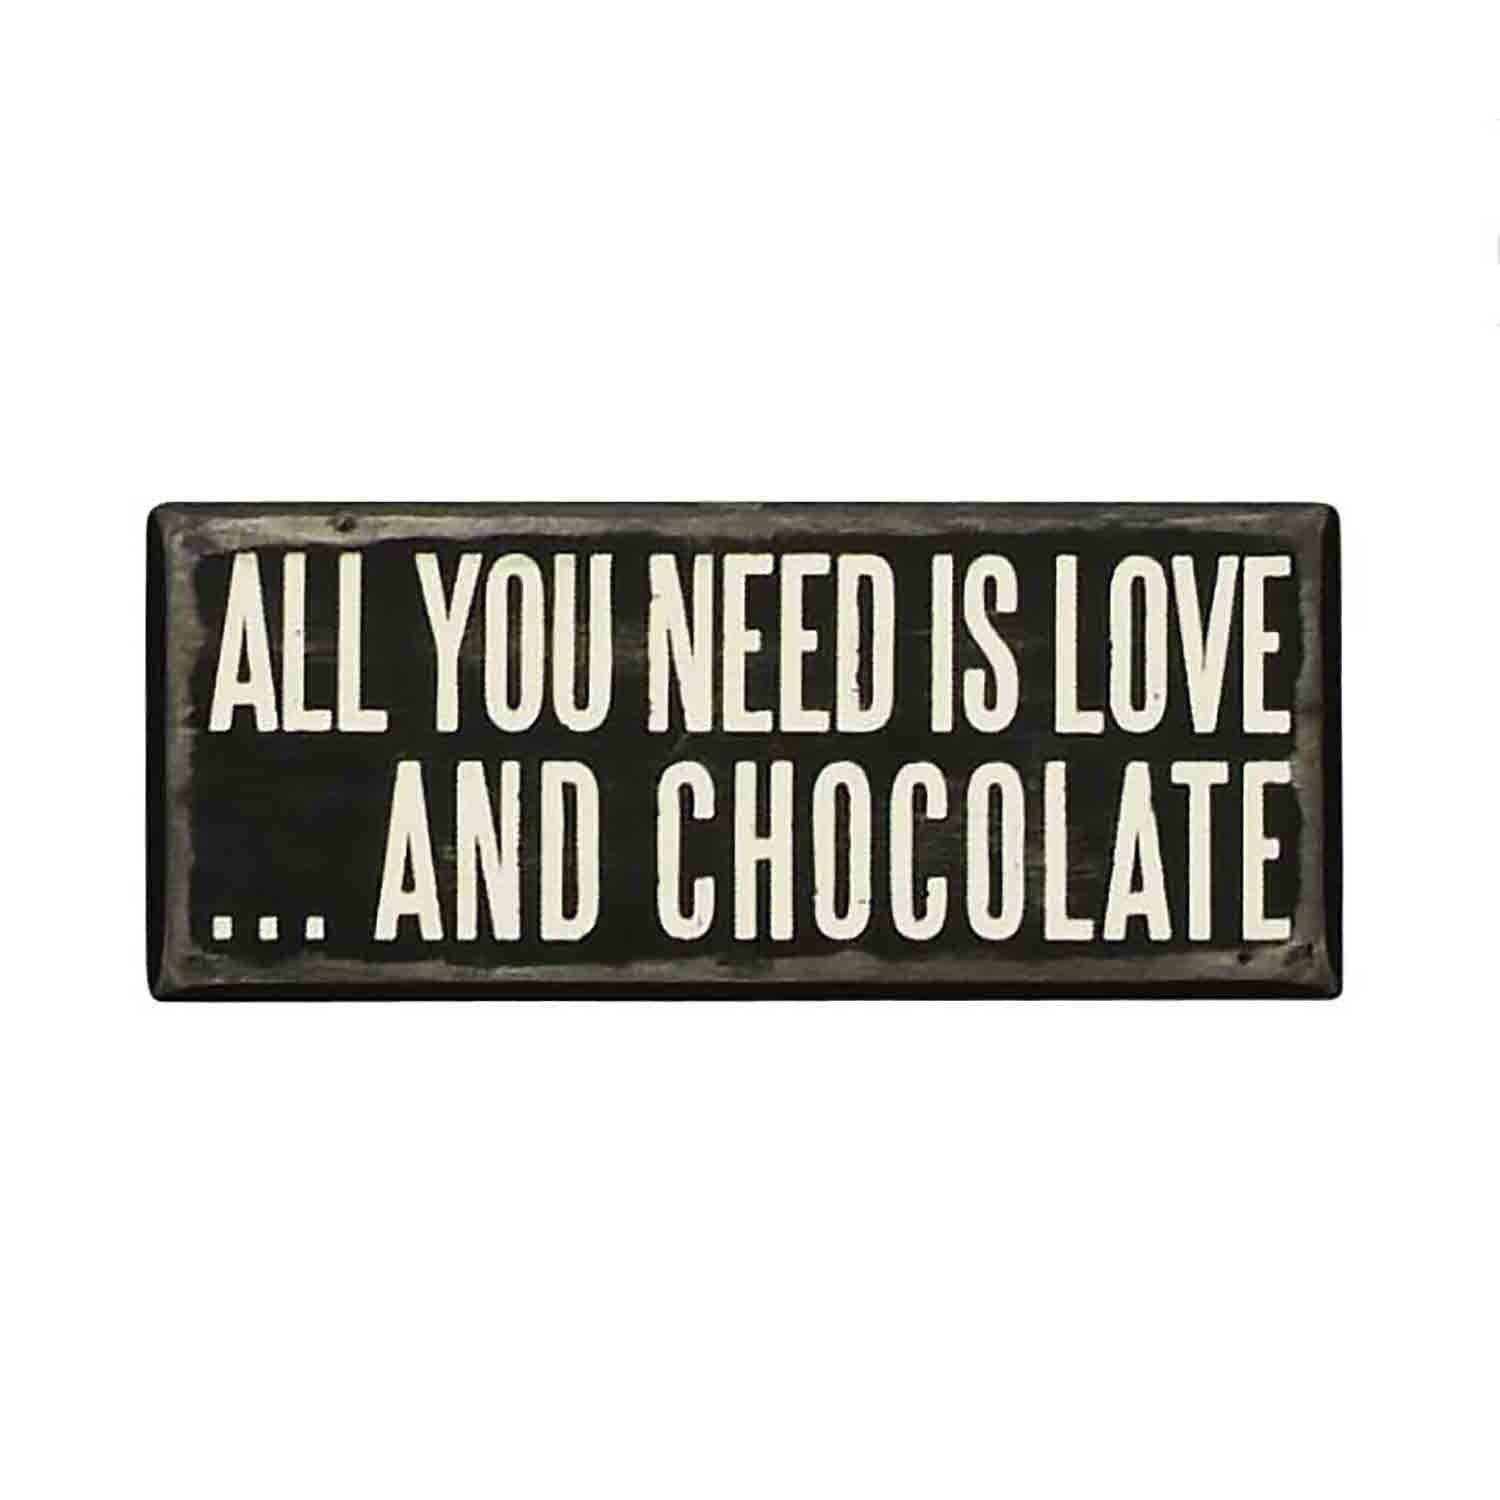 And Chocolate Box Sign